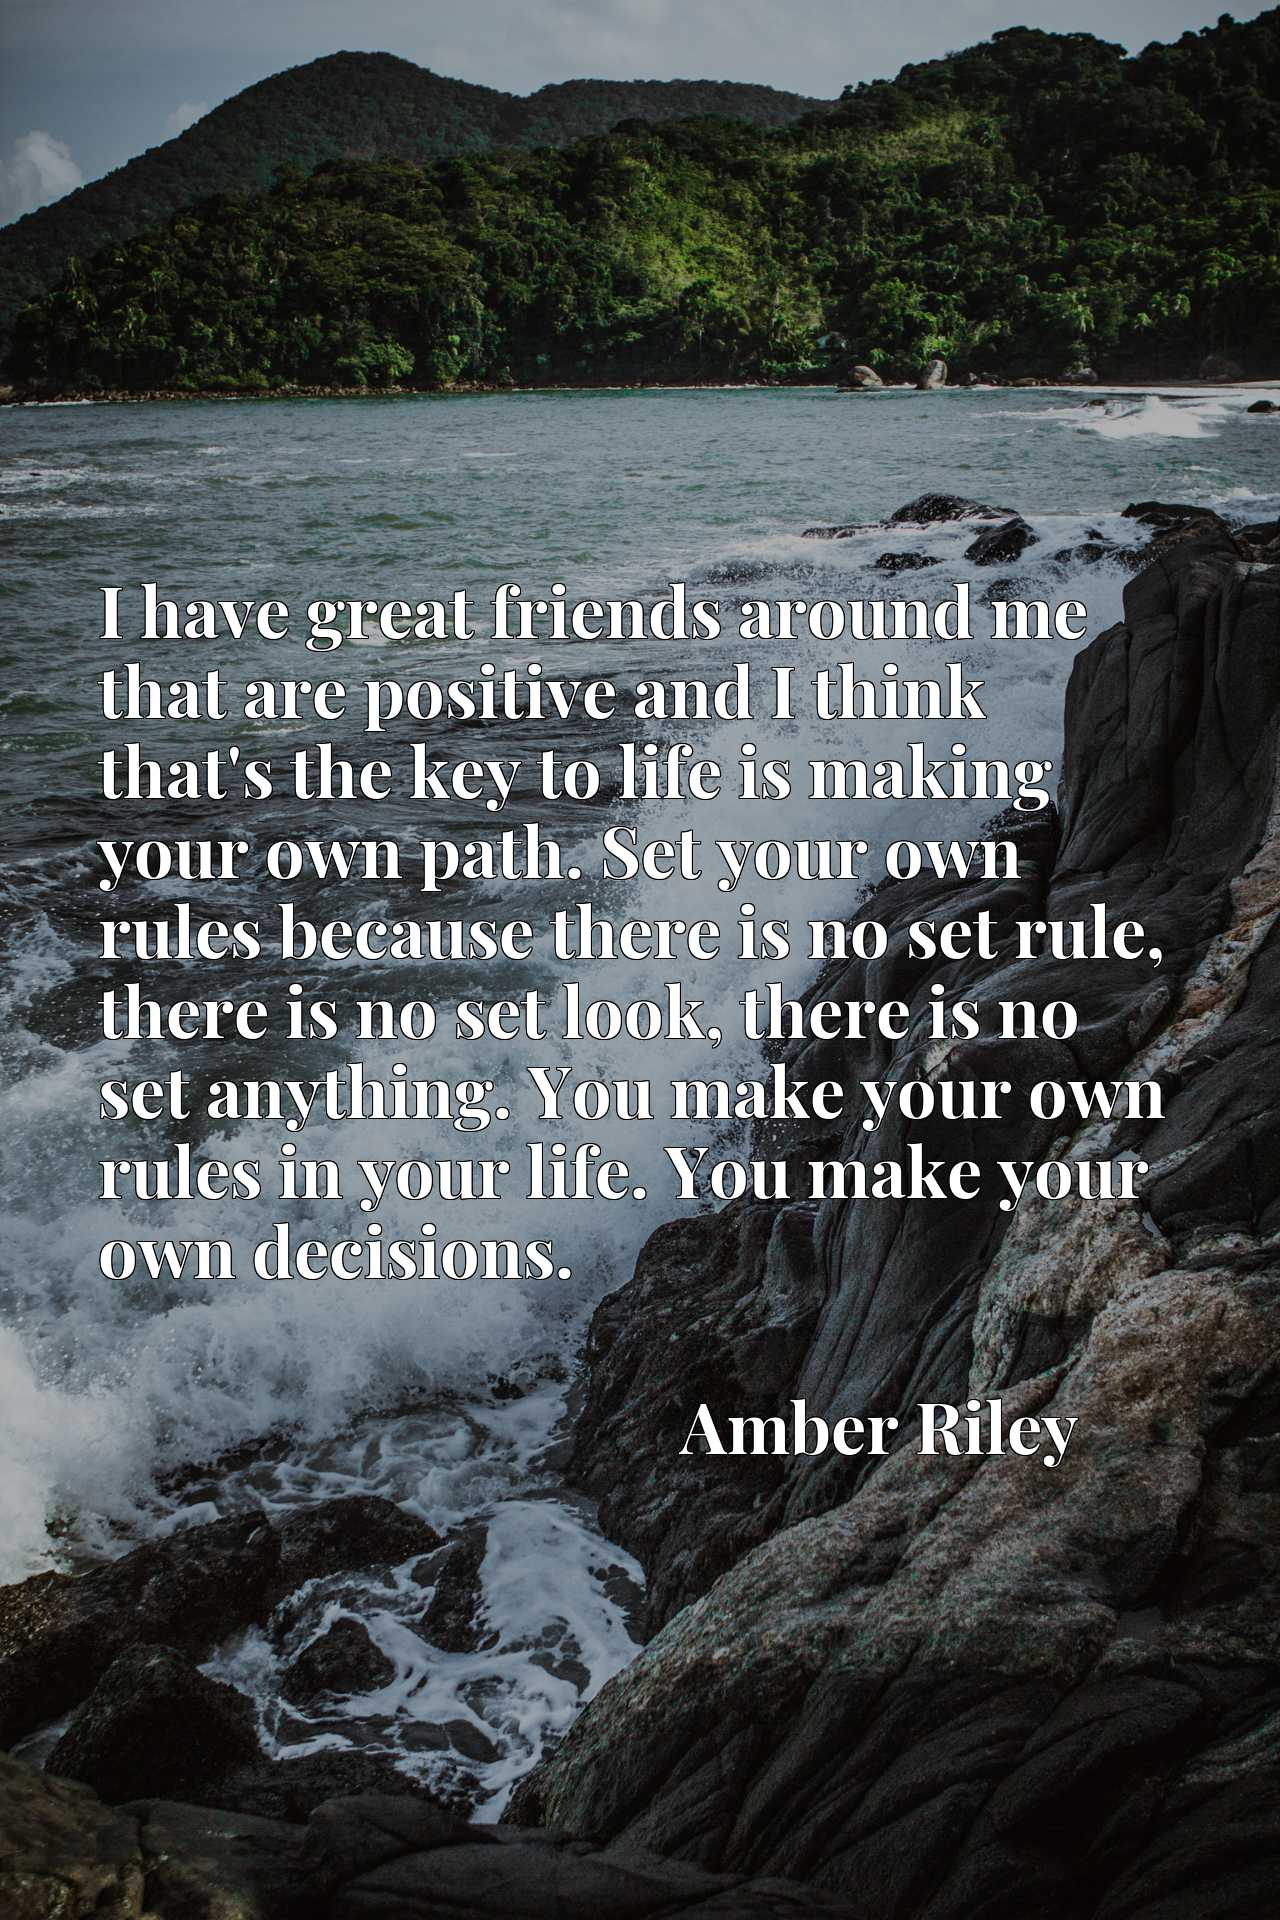 I have great friends around me that are positive and I think that's the key to life is making your own path. Set your own rules because there is no set rule, there is no set look, there is no set anything. You make your own rules in your life. You make your own decisions.